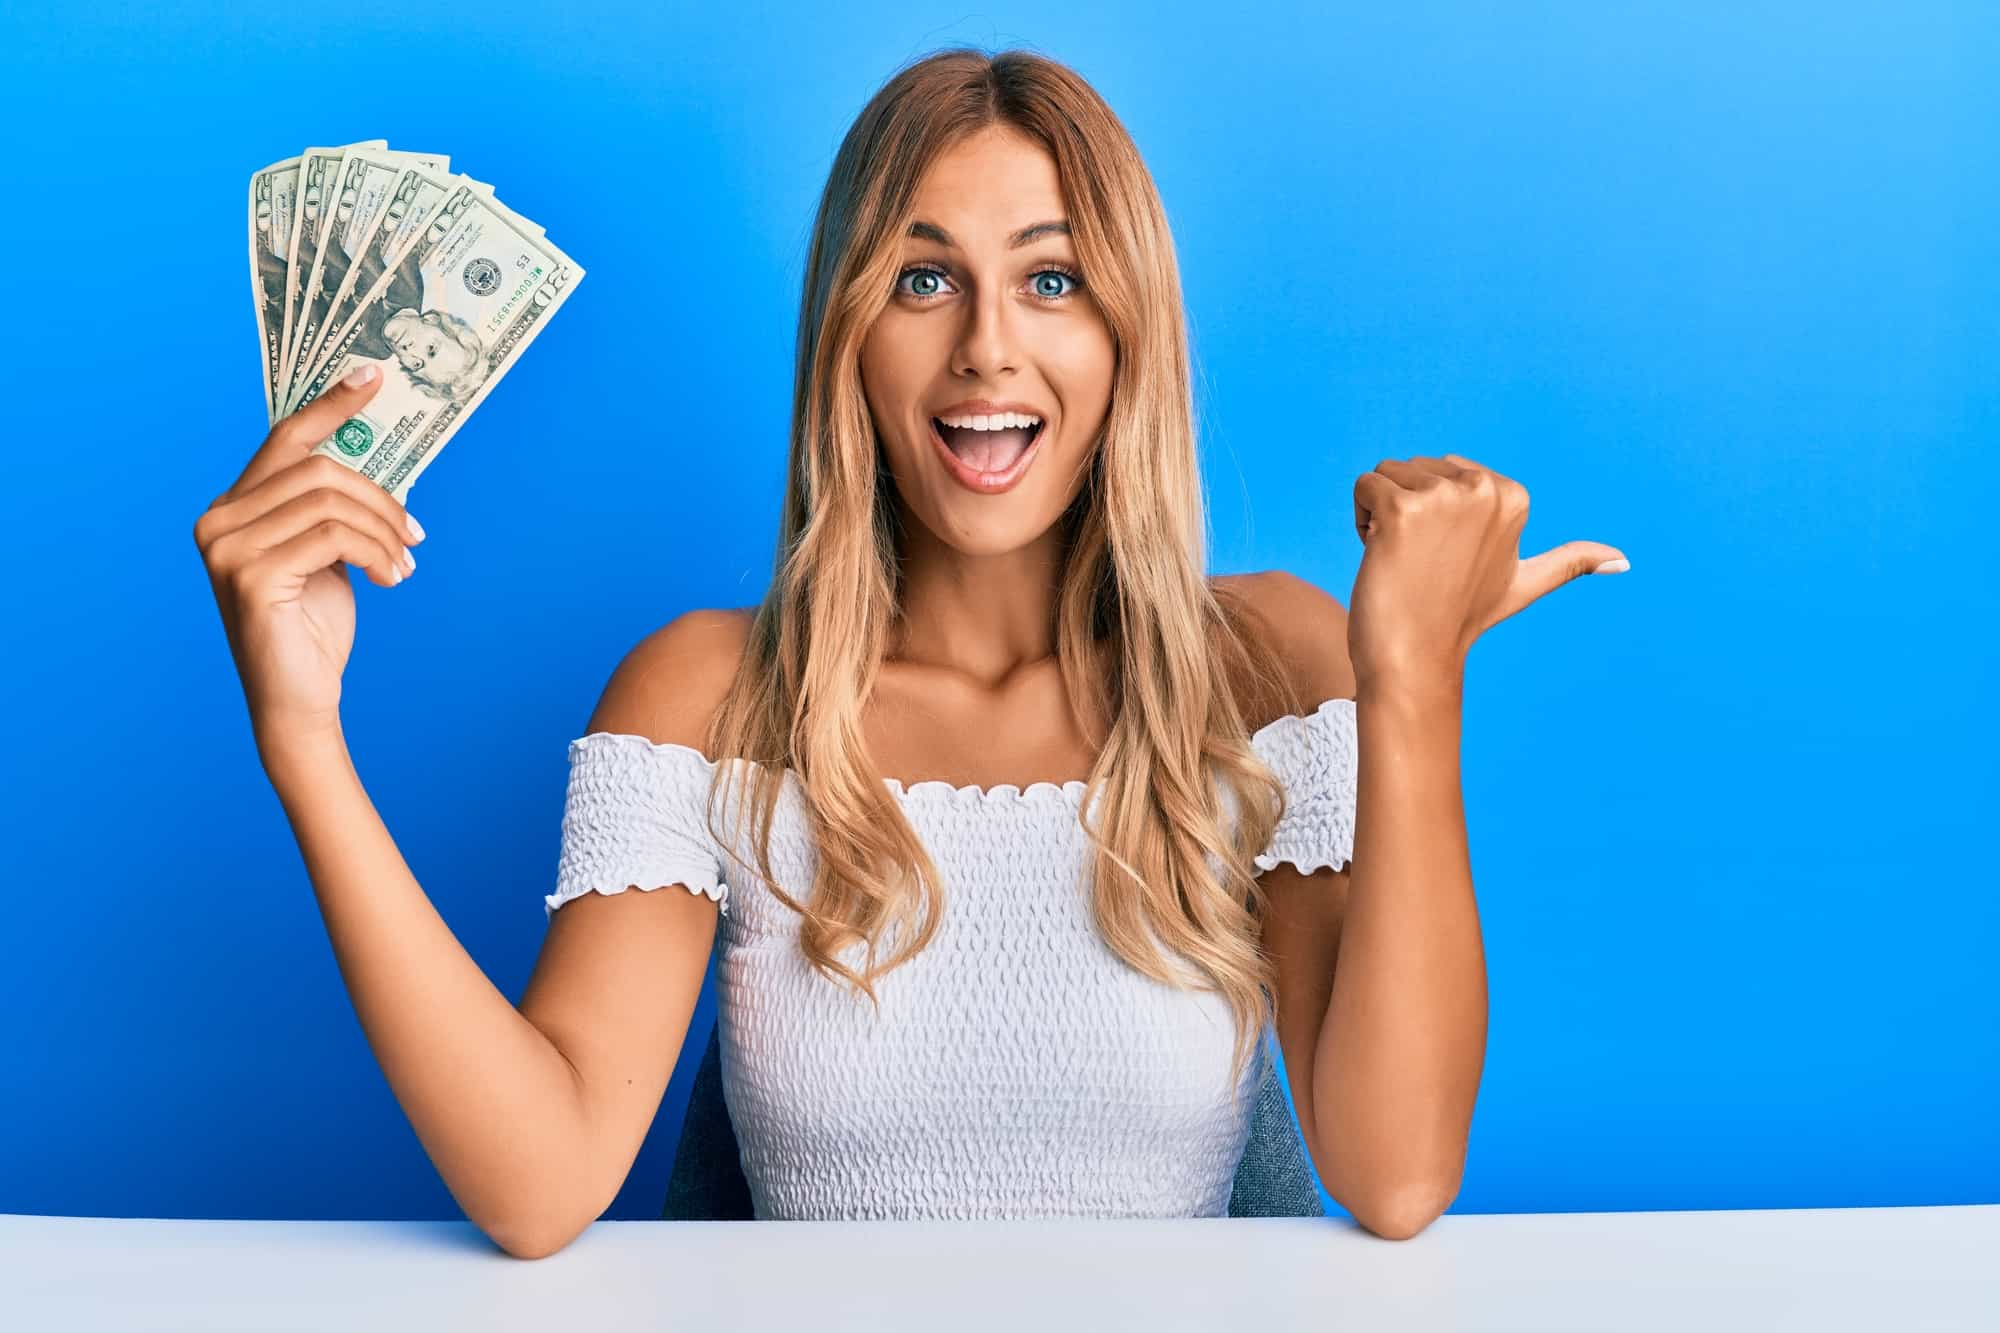 Read how to make 20 dollars fast